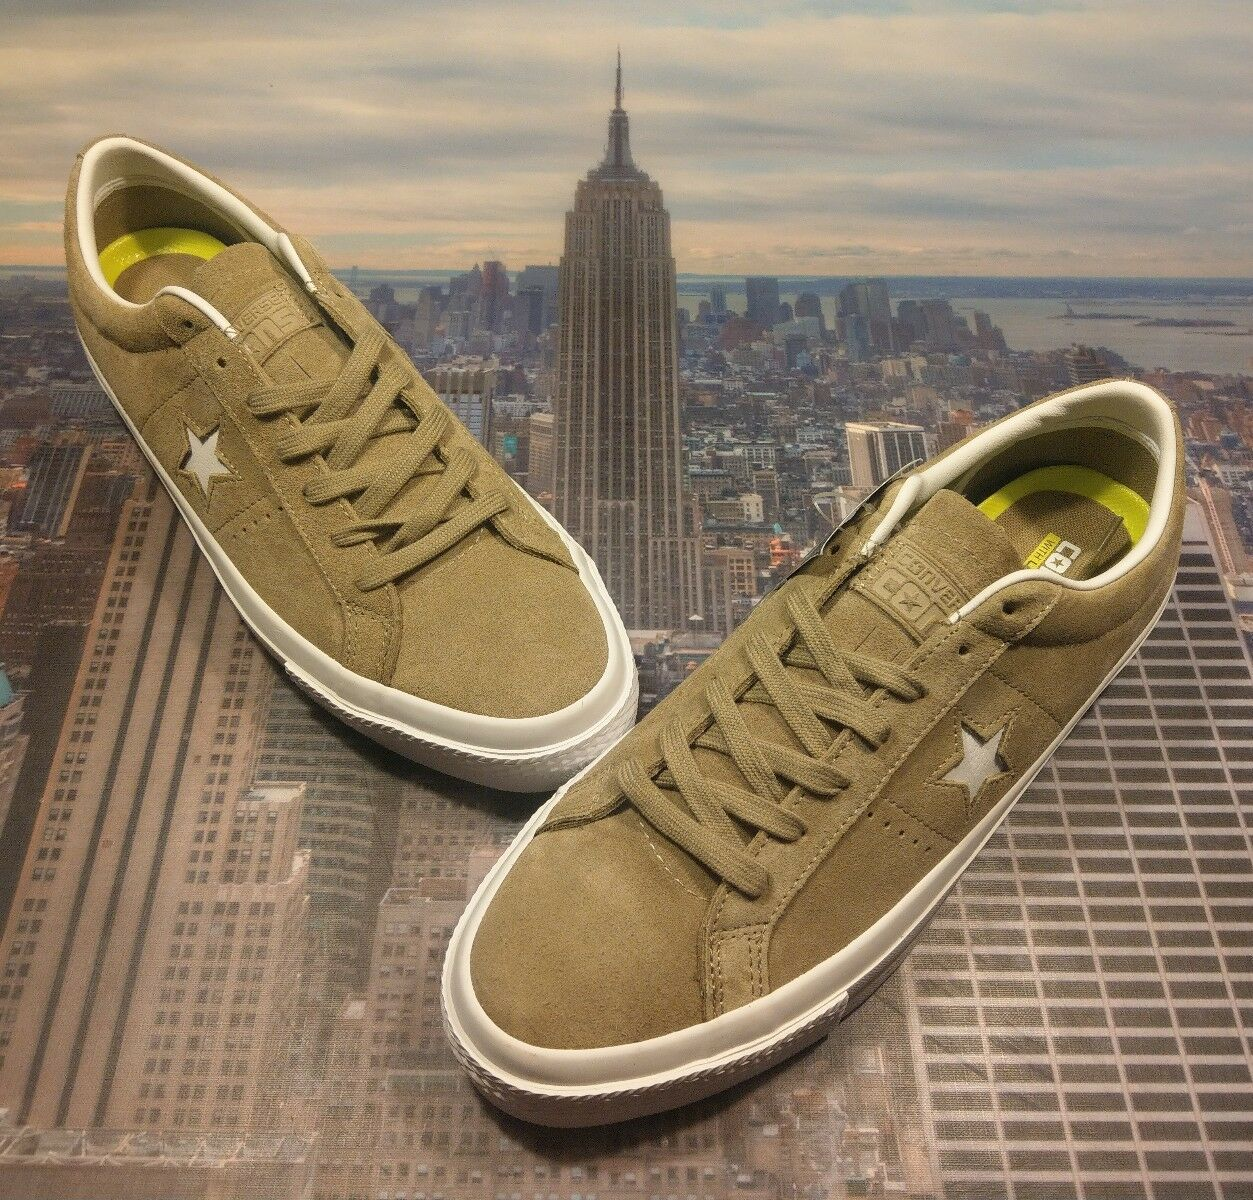 Converse Chuck One Star Suede Ox Low Top Sandy/White Mens Size 11.5 153965c New